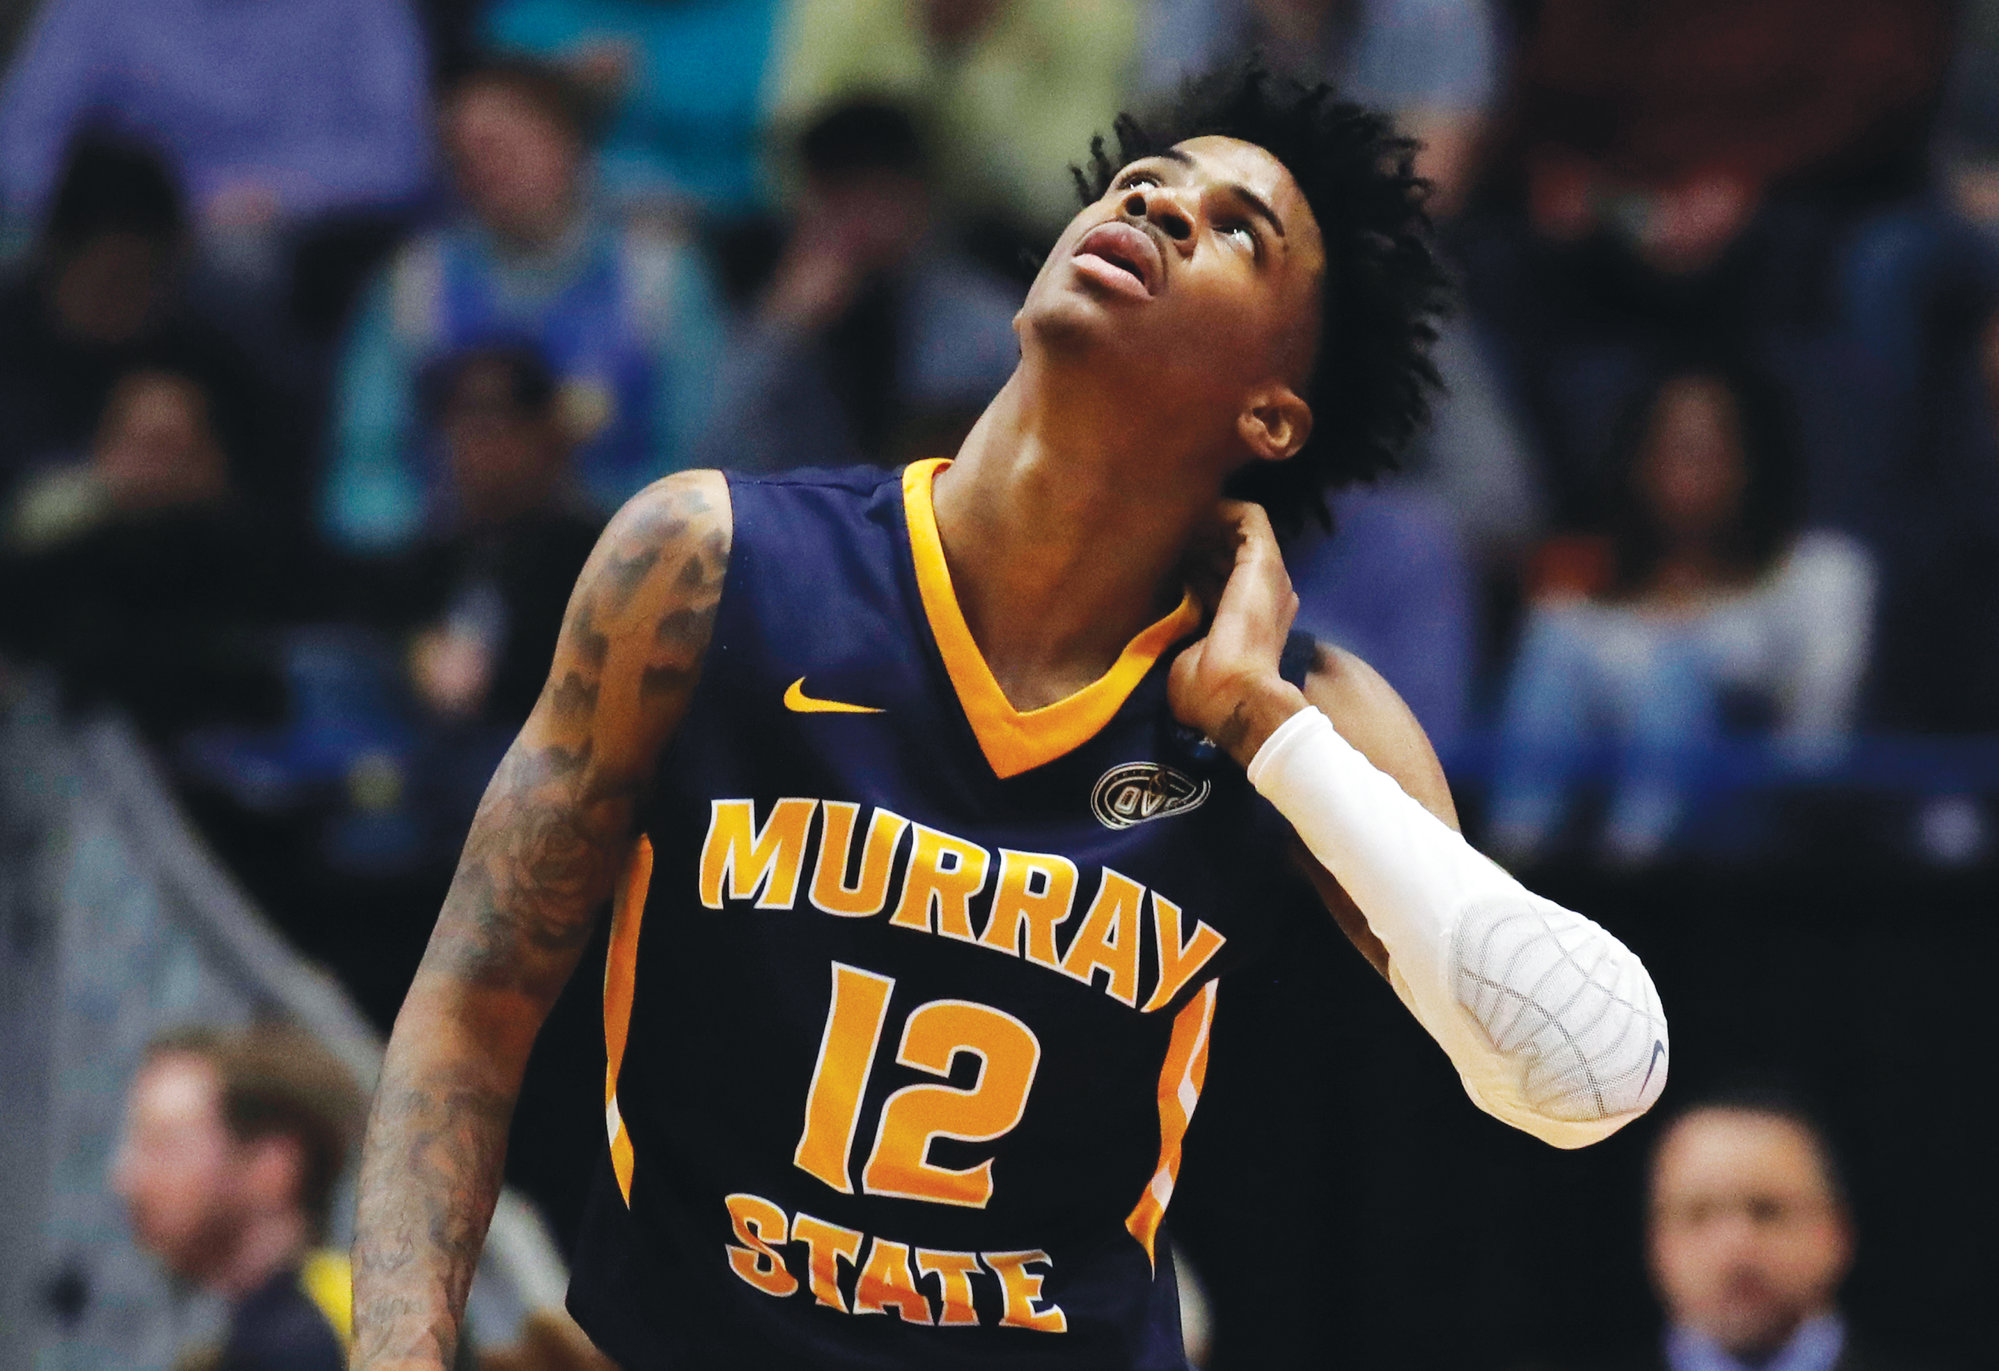 Murray State's Ja Morant (12) looks up at the scoreboard during the first half of the Racers' second round loss to Florida State in the NCAA men's basketball tournament in March. Morant is scheduled for knee surgery on Monday.